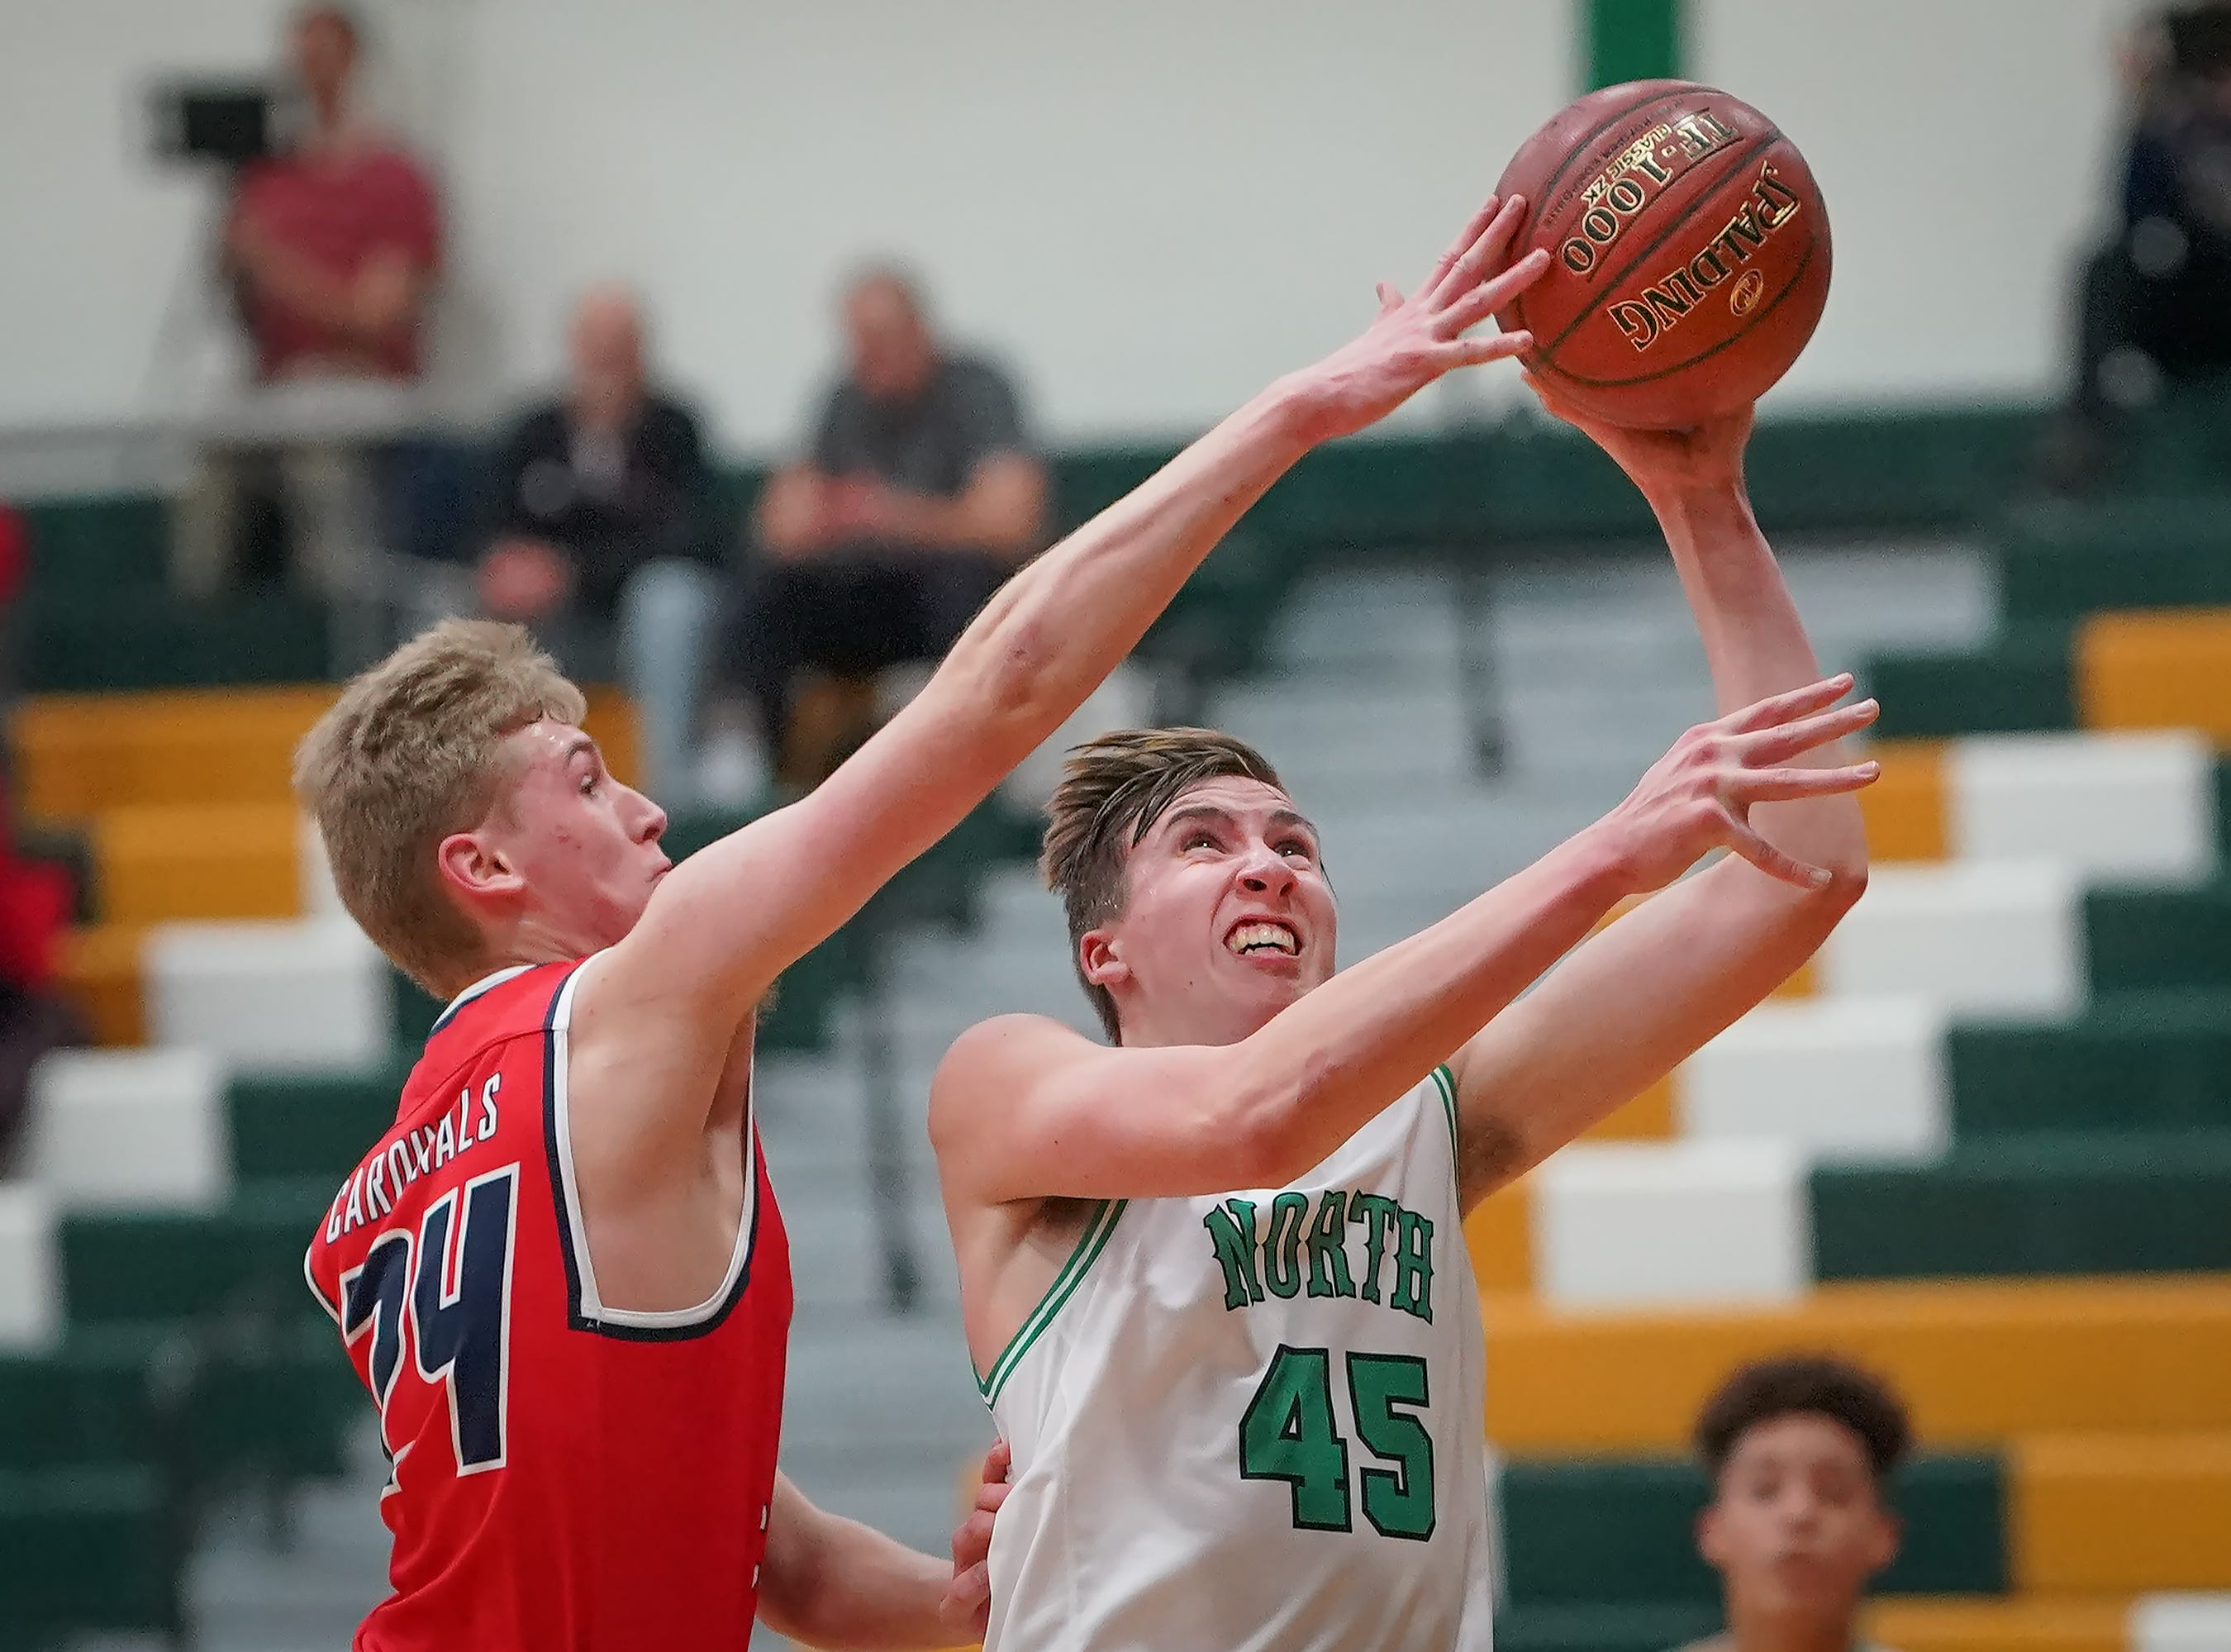 Luke Salzsieder (45) of Oshkosh North gets a shot off while guarded by Nick Hartman (24) of Pacelli. The Oshkosh North Spartans hosted the Stevens Point Pacelli Catholic Cardinals in the Friday night game of the Fox River Brewing Thanksgiving Classic Tournament.